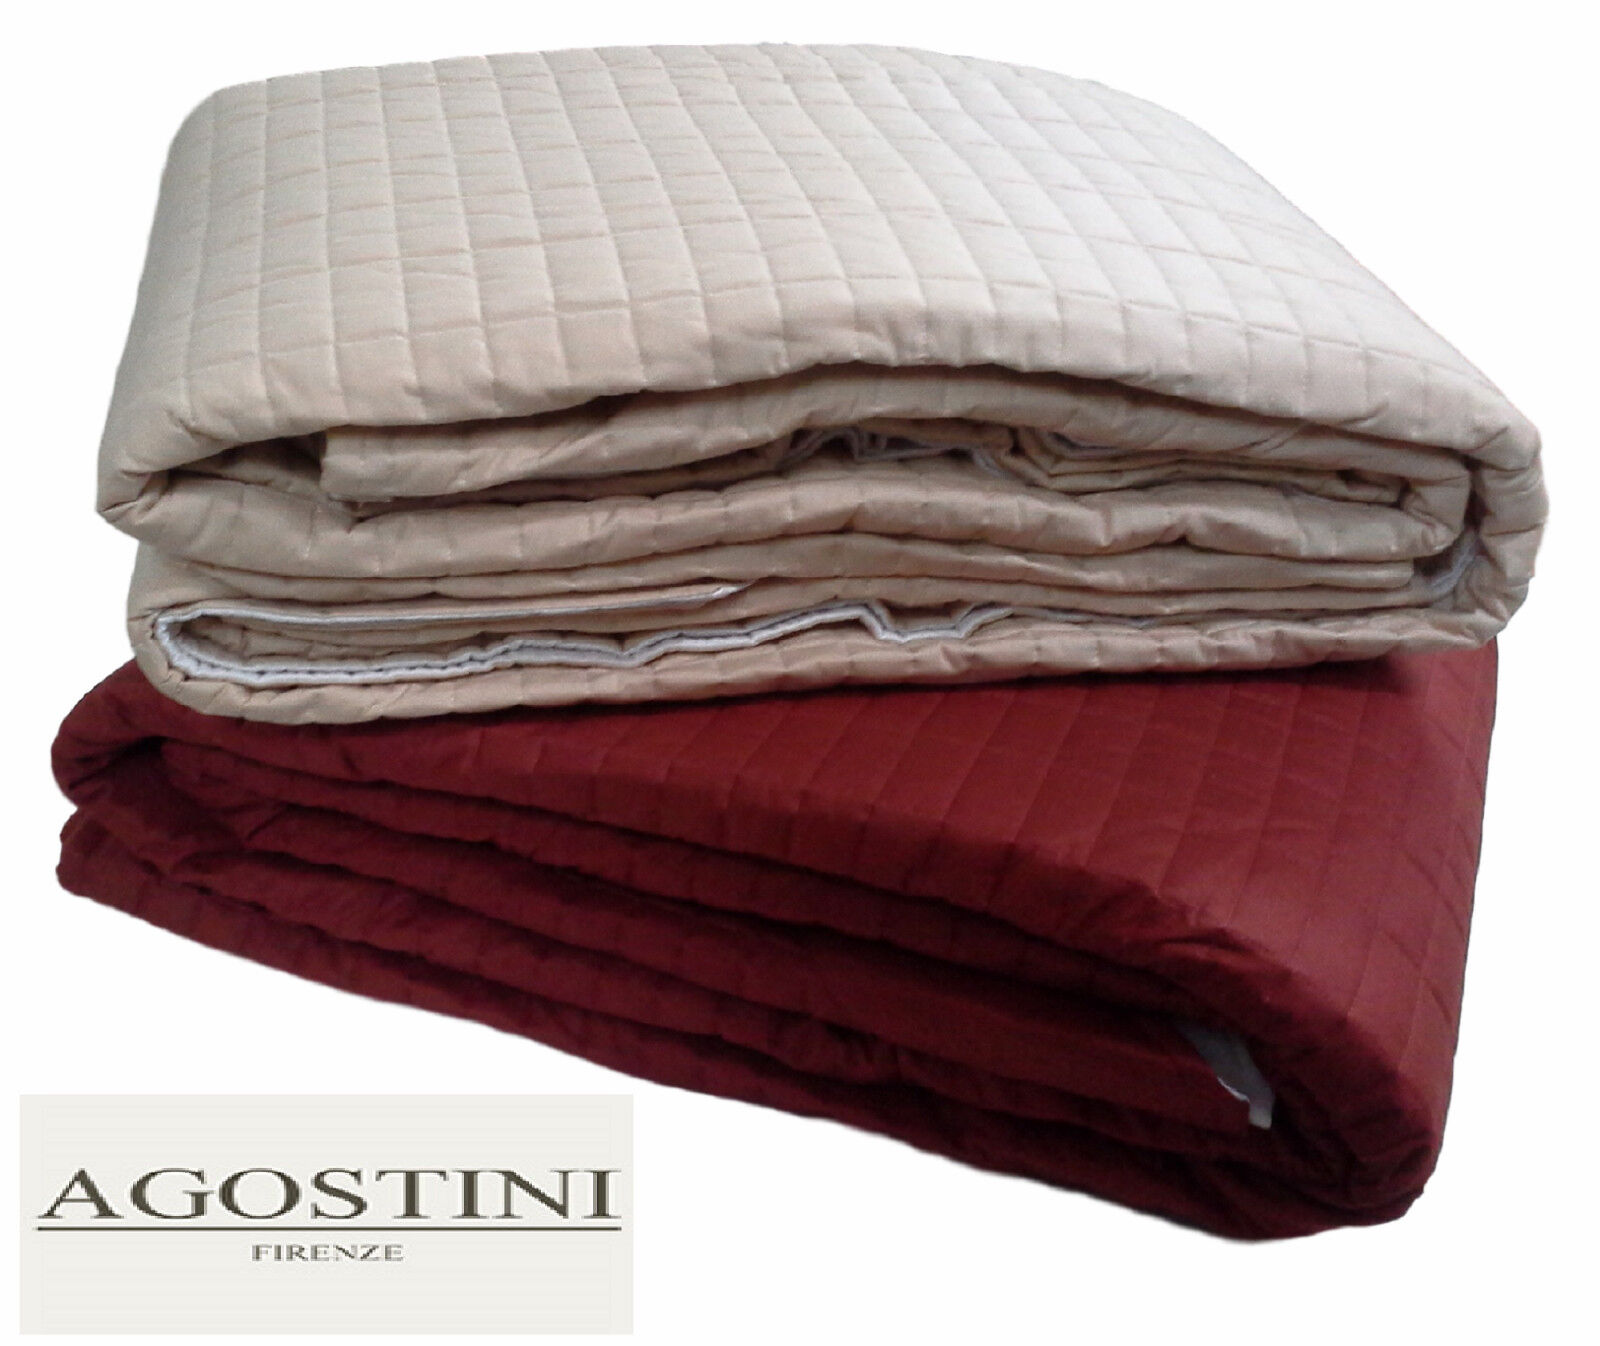 Quilt, Quilt. bedspread. AGOSTINI Firenze, AGO-Q11. Double, double